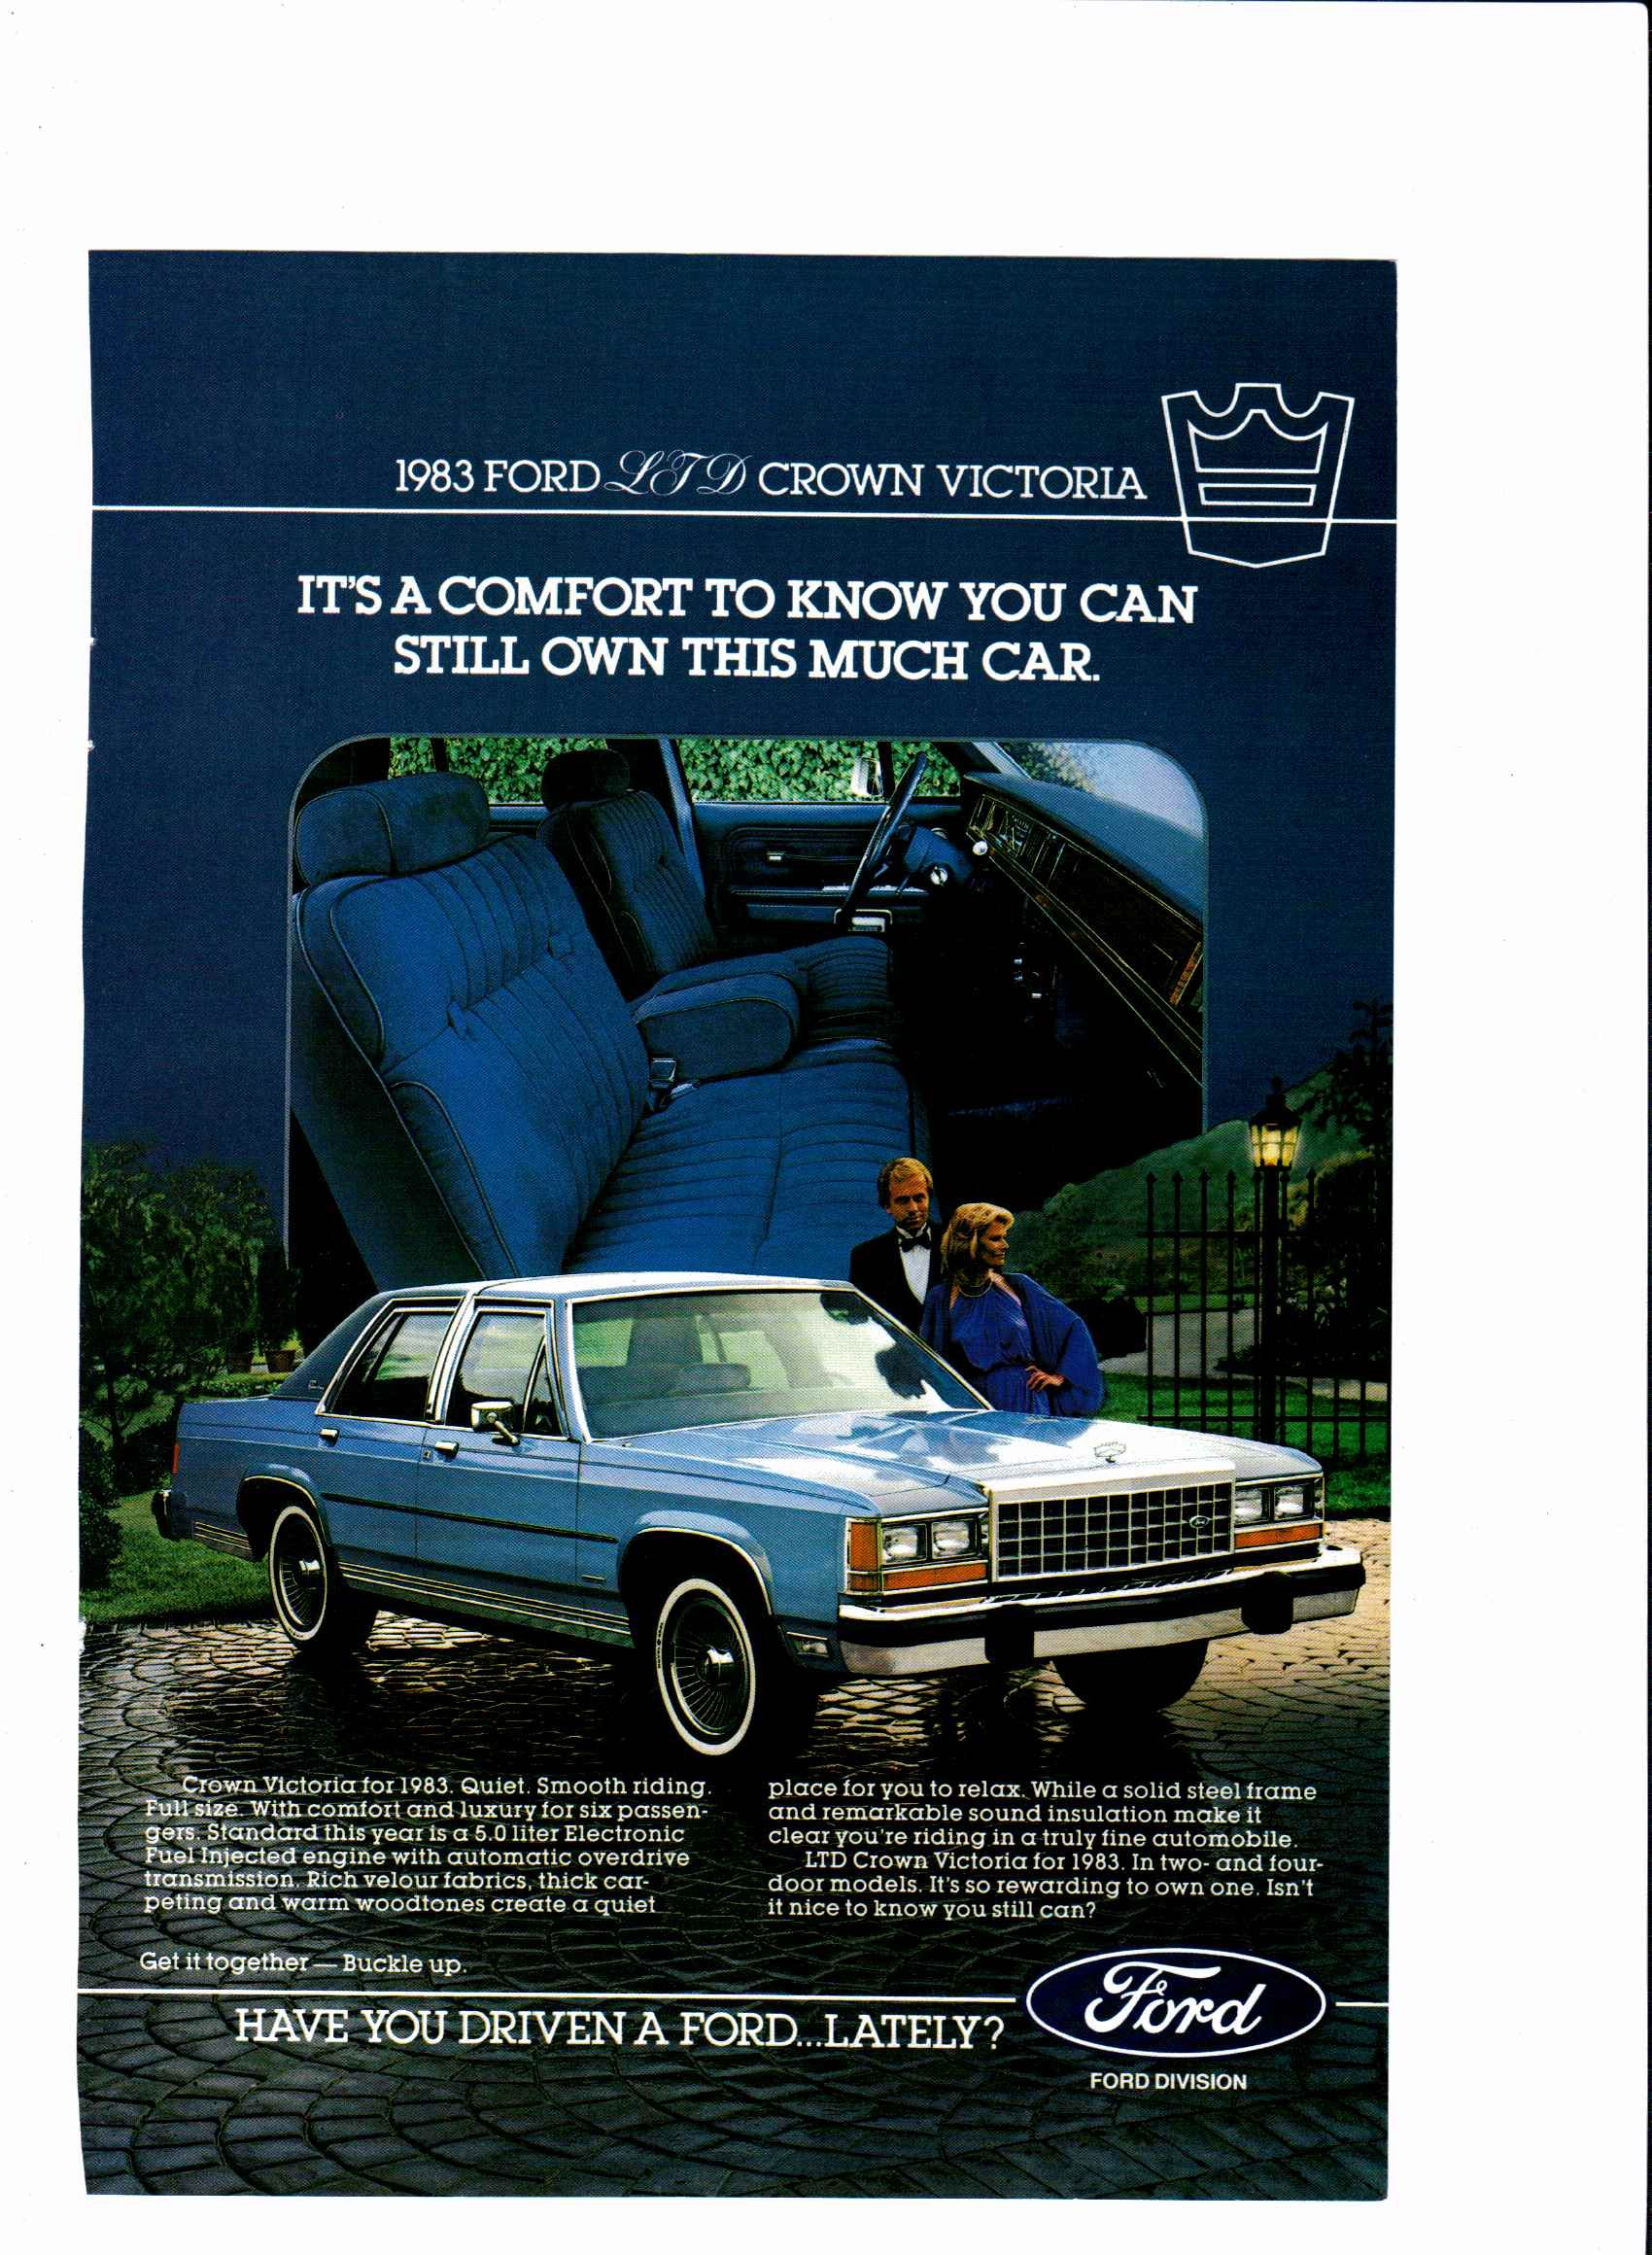 1983 Ford LTD Crown Victoria ad National Geographic, February 1983 ...